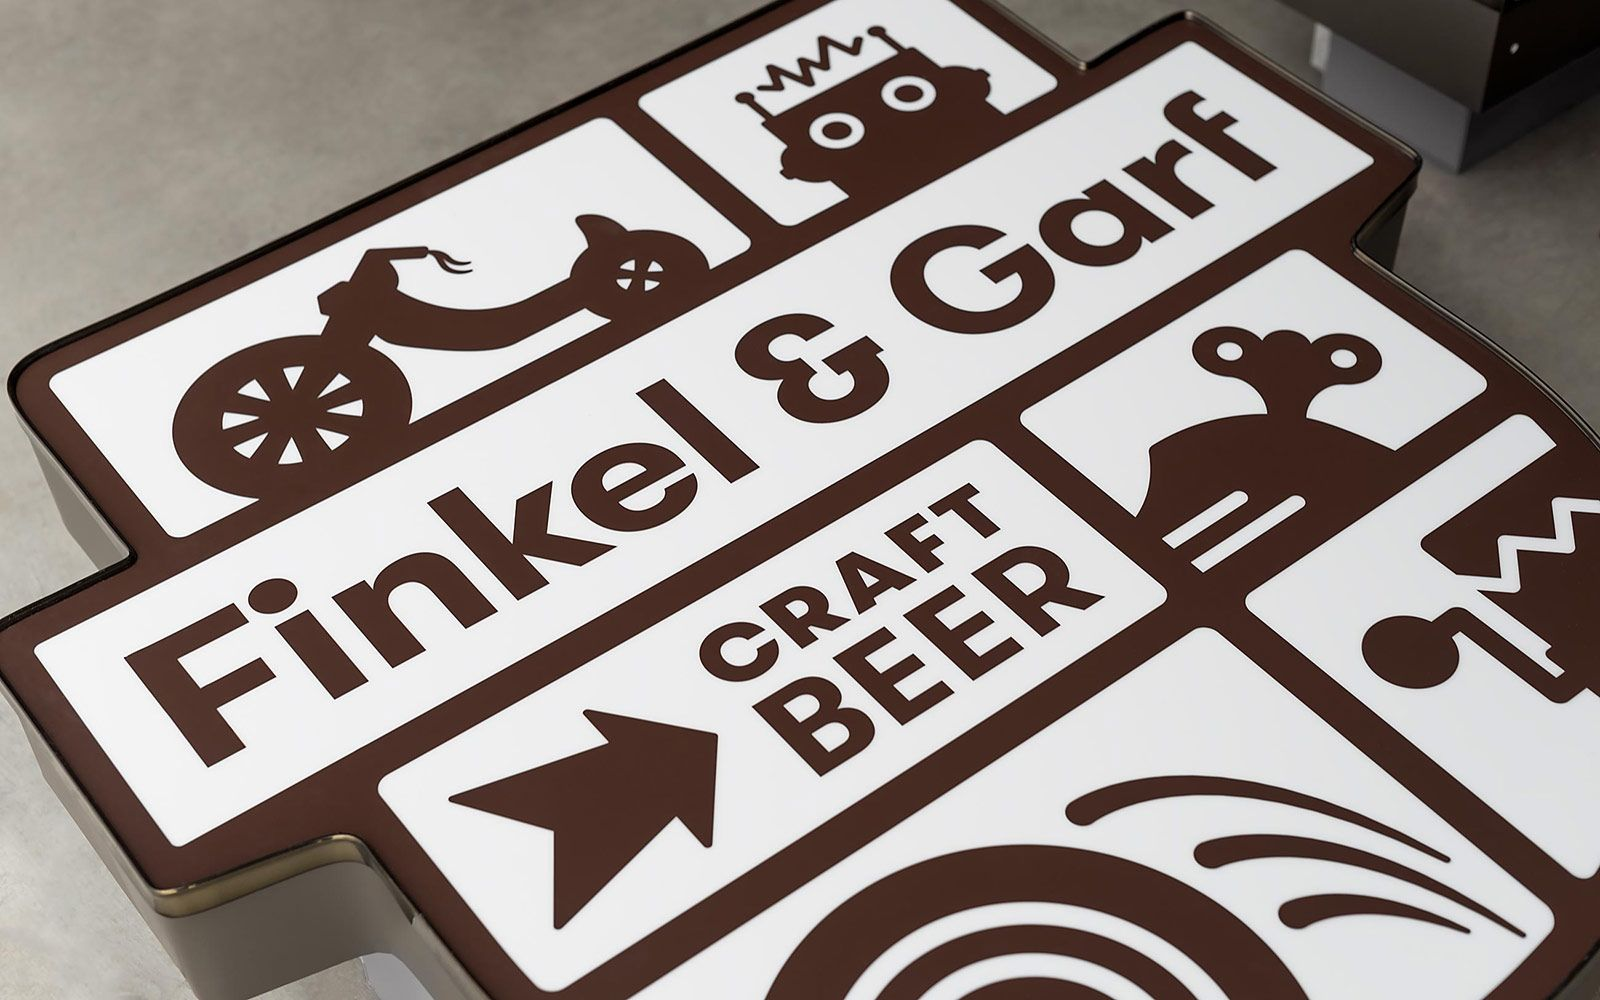 Finkel & Garf Beer Brand Grilli Type Independent Swiss